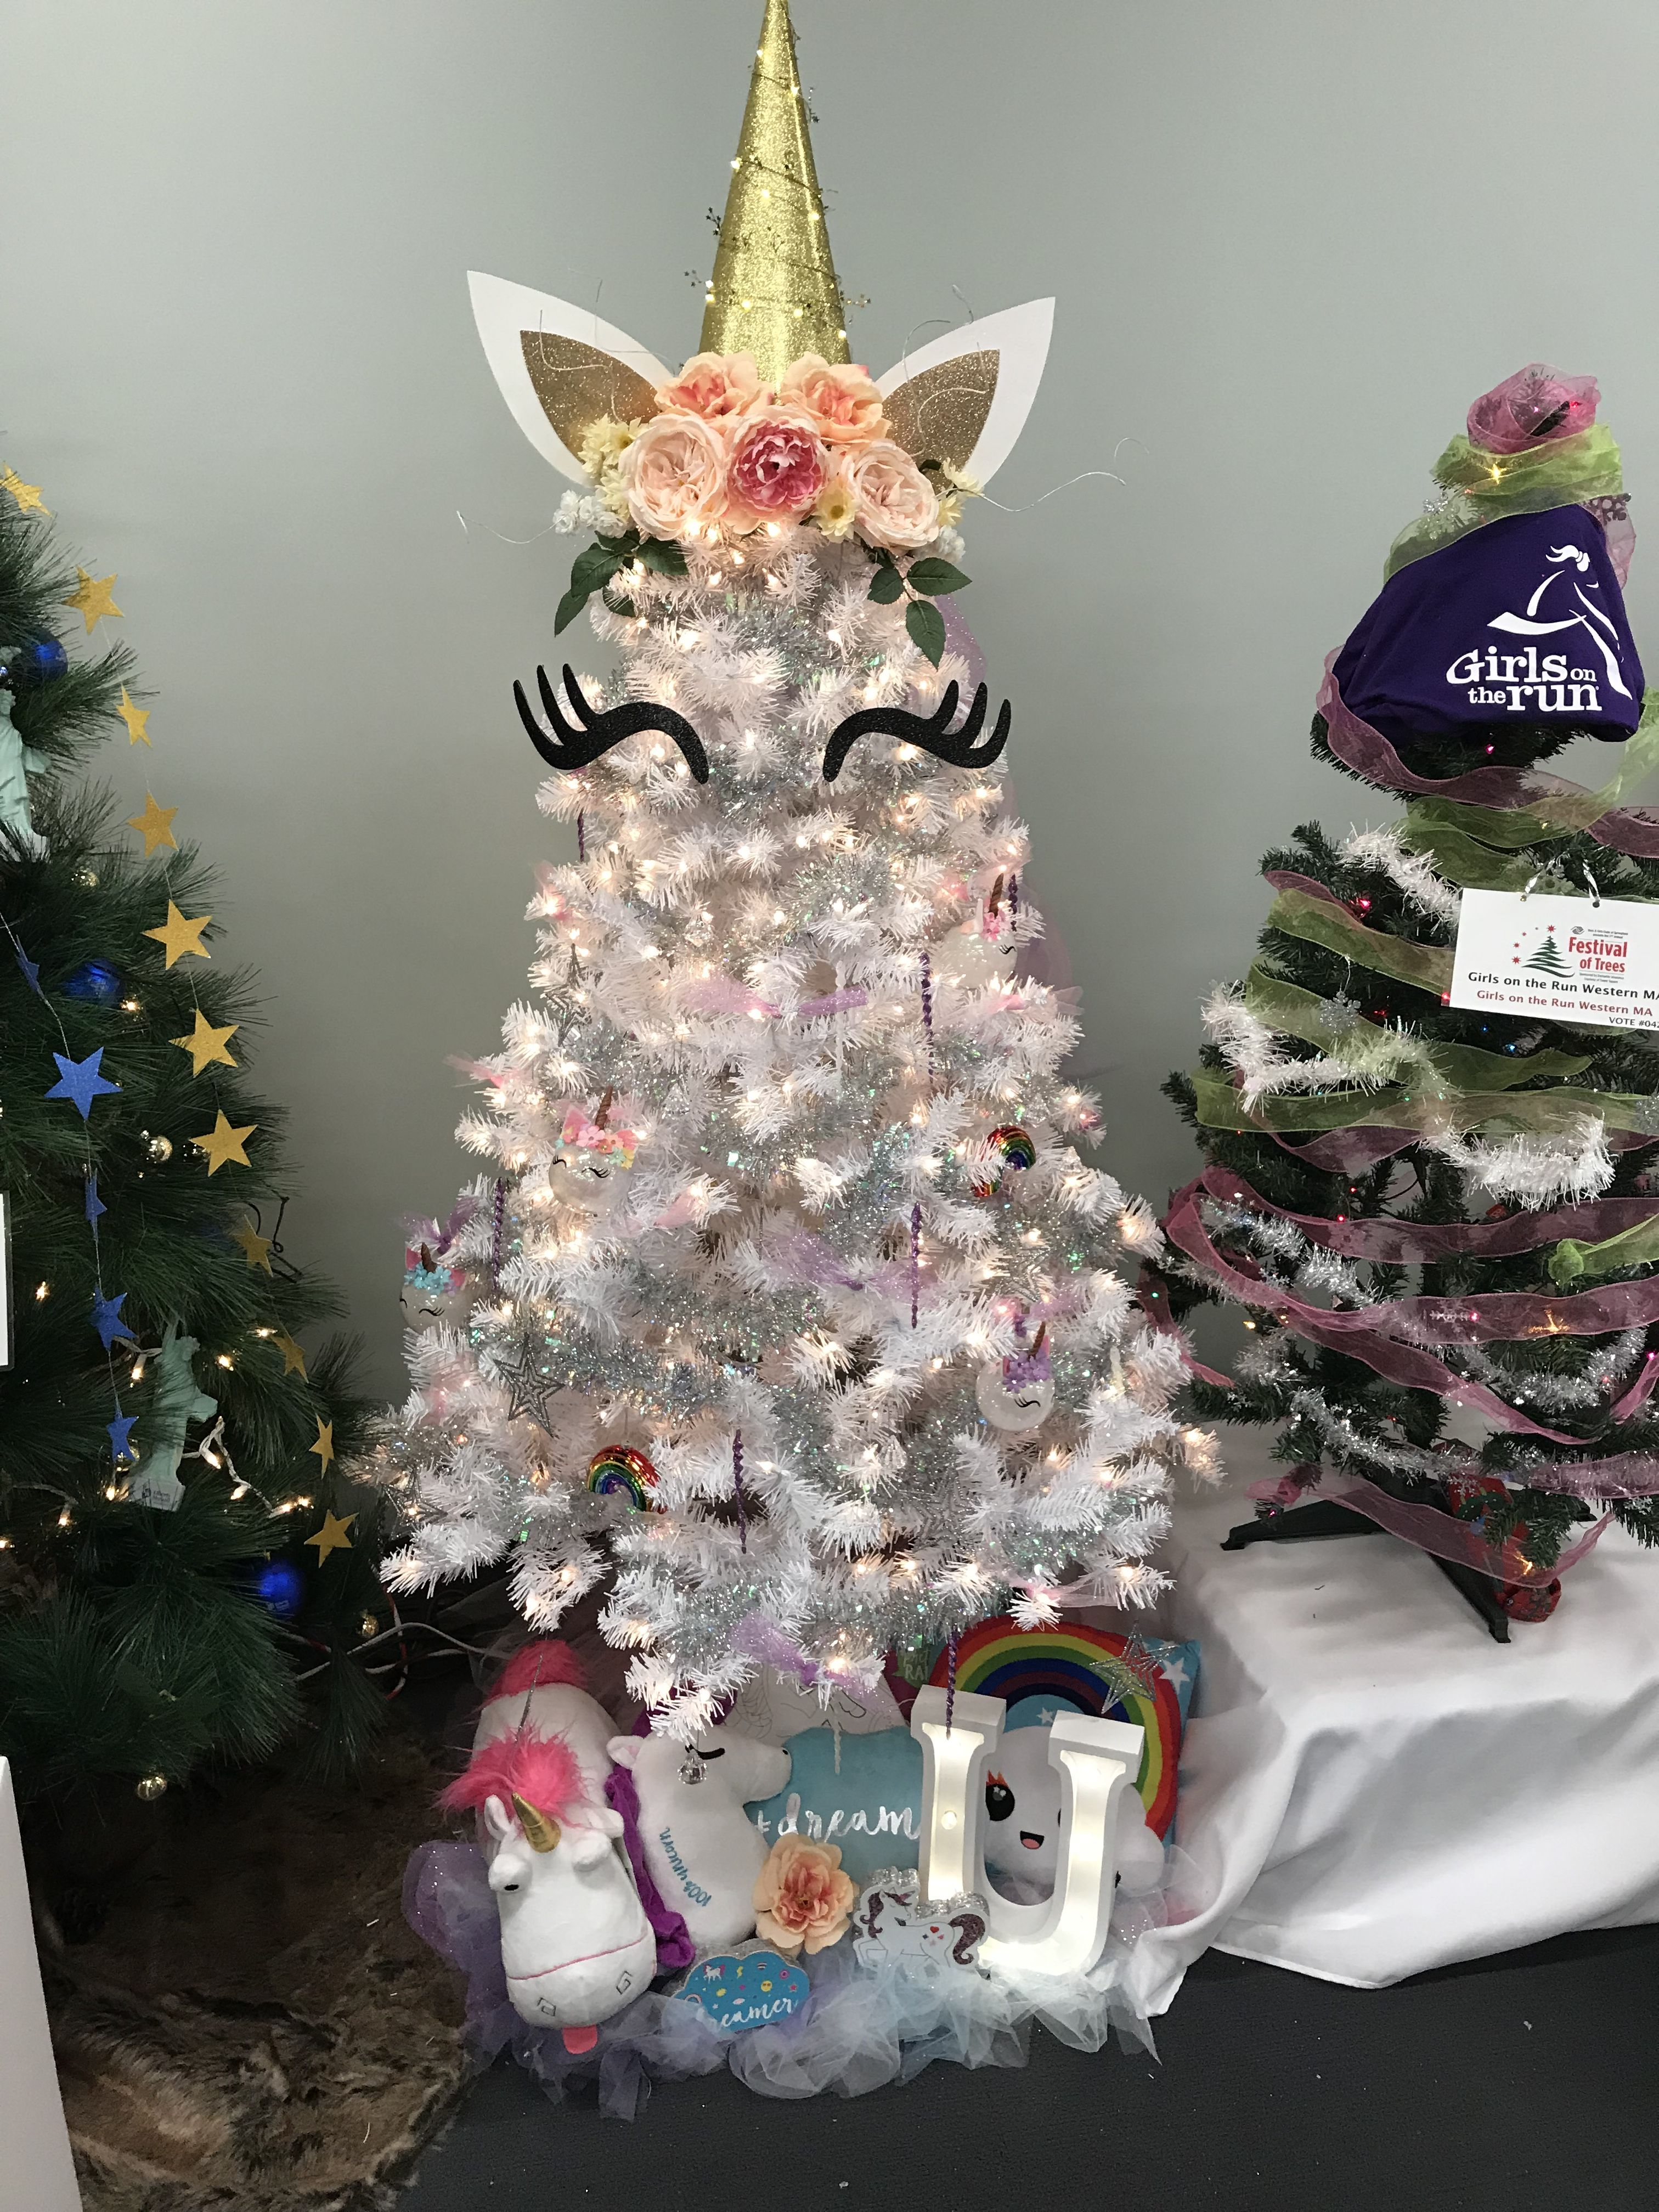 Unicorn Christmas Tree Unitree Who Do You Know That Would Love This Sparkly Magical Tree Christmas Unicorn Christmas Tree Themes Christmas Trees For Kids